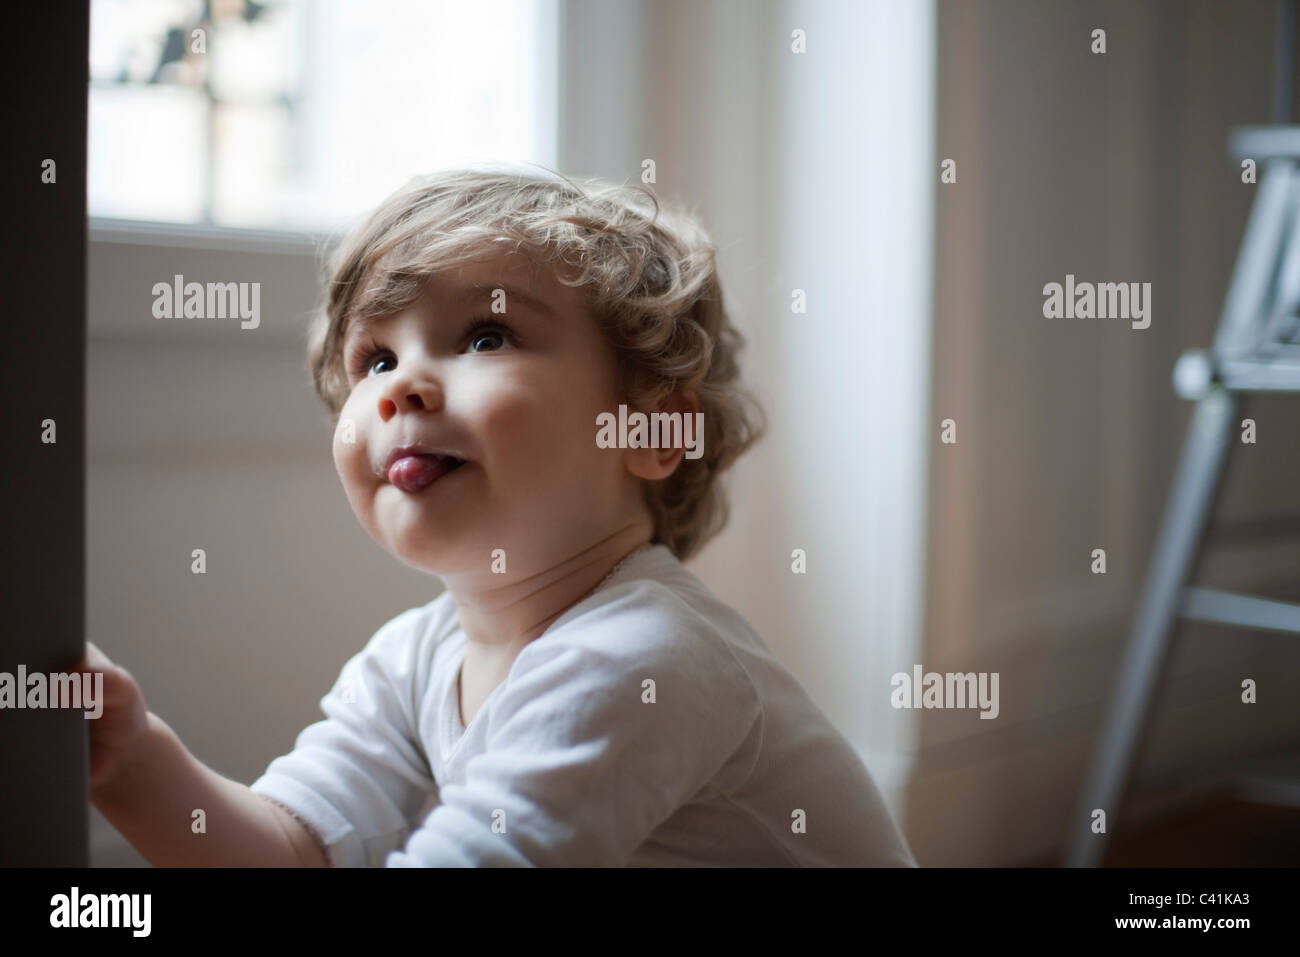 Toddler boy sticking out tongue, looking up, portrait - Stock Image